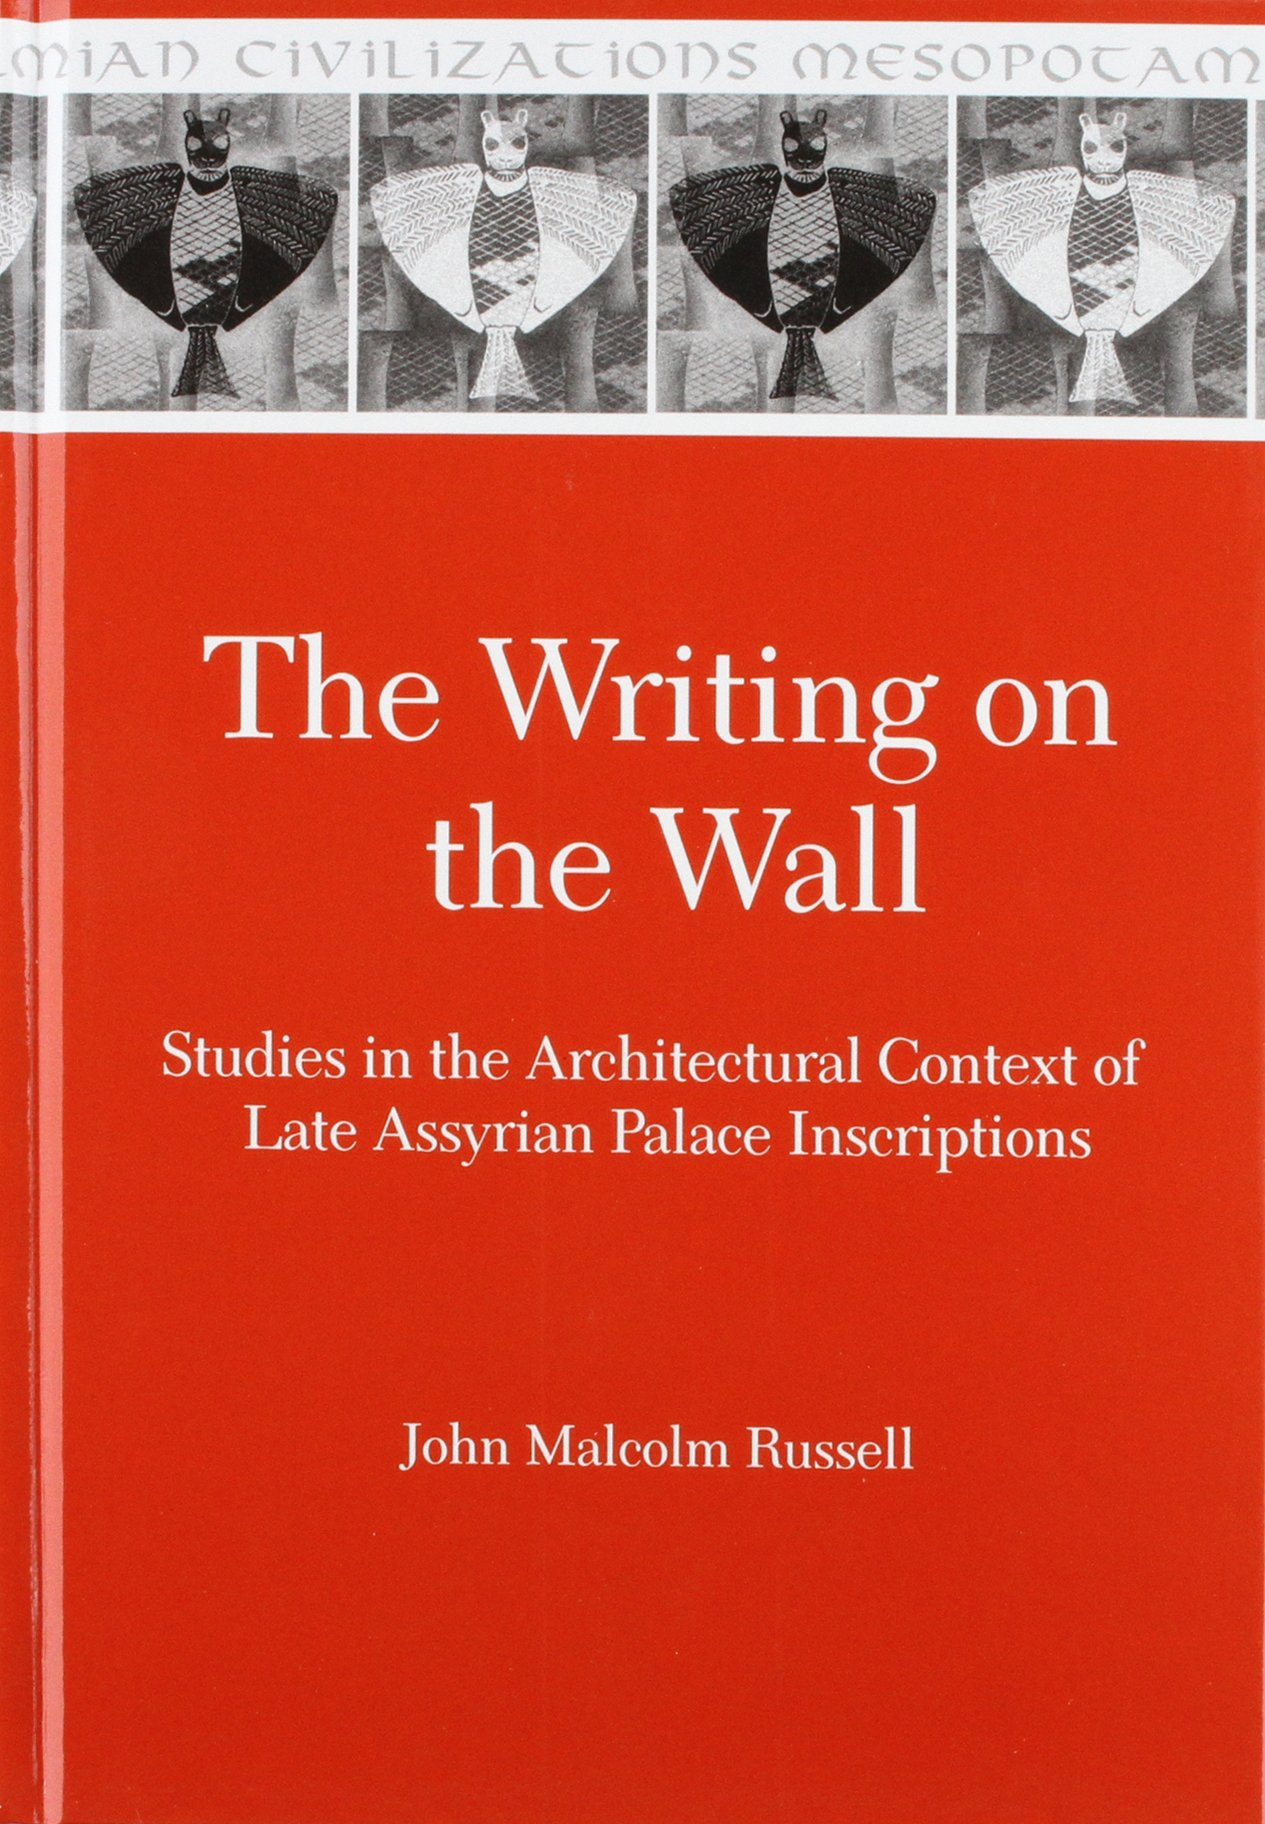 The Writing on the Wall: Studies in the Architectural Context of Late Assyrian Palace Inscriptions (Mesopotamian Civilizations)